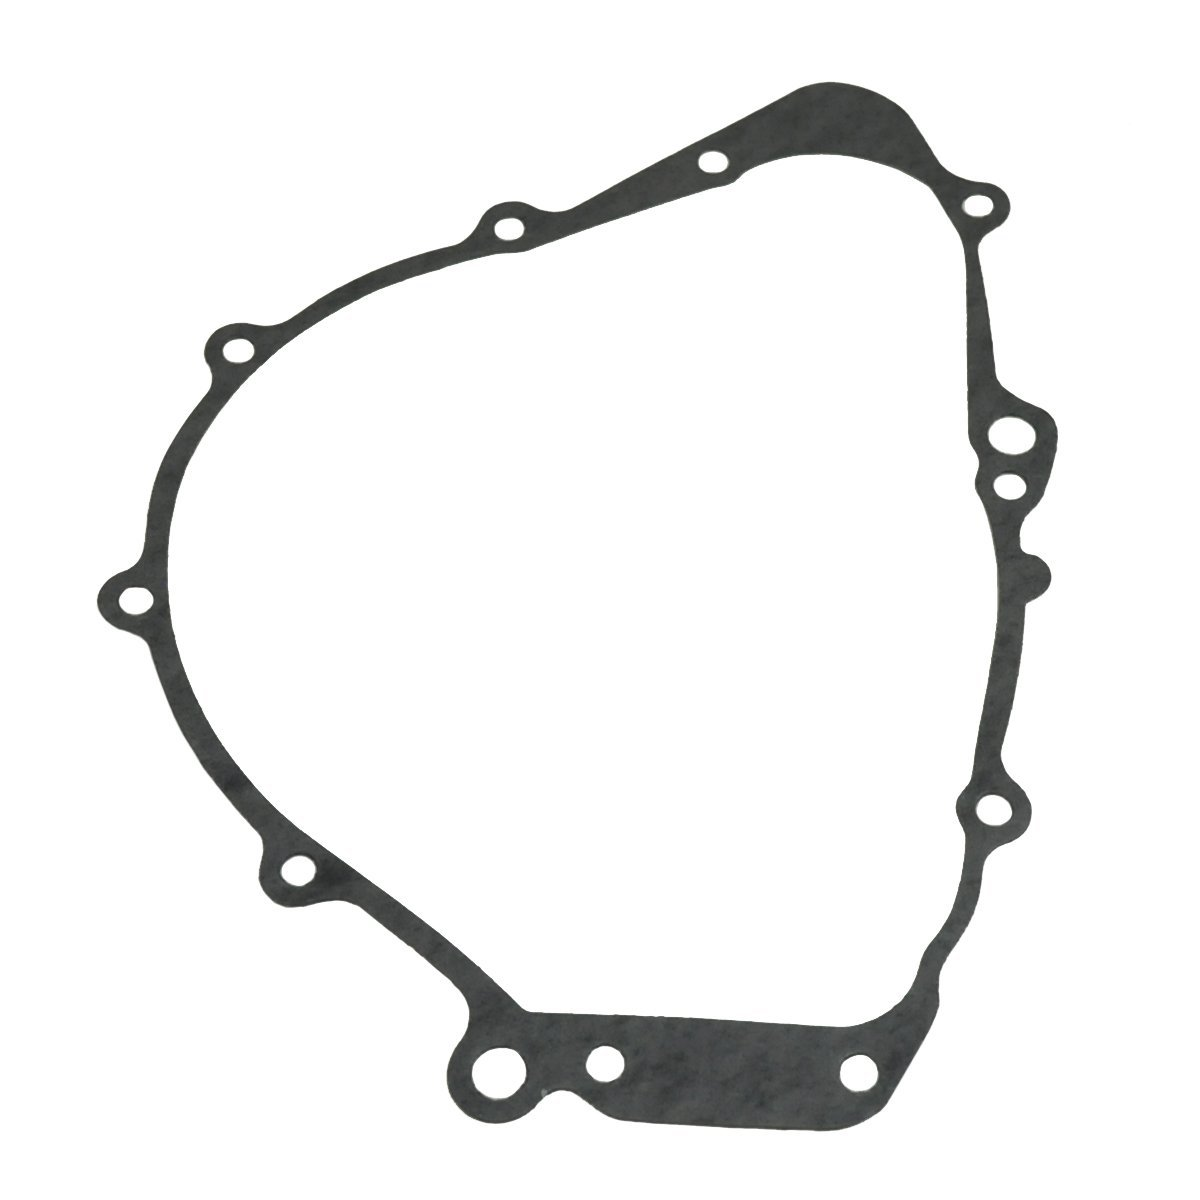 Buy THIS IS A NEW AFTERMARKET STATOR COVER GASKET FOR THE